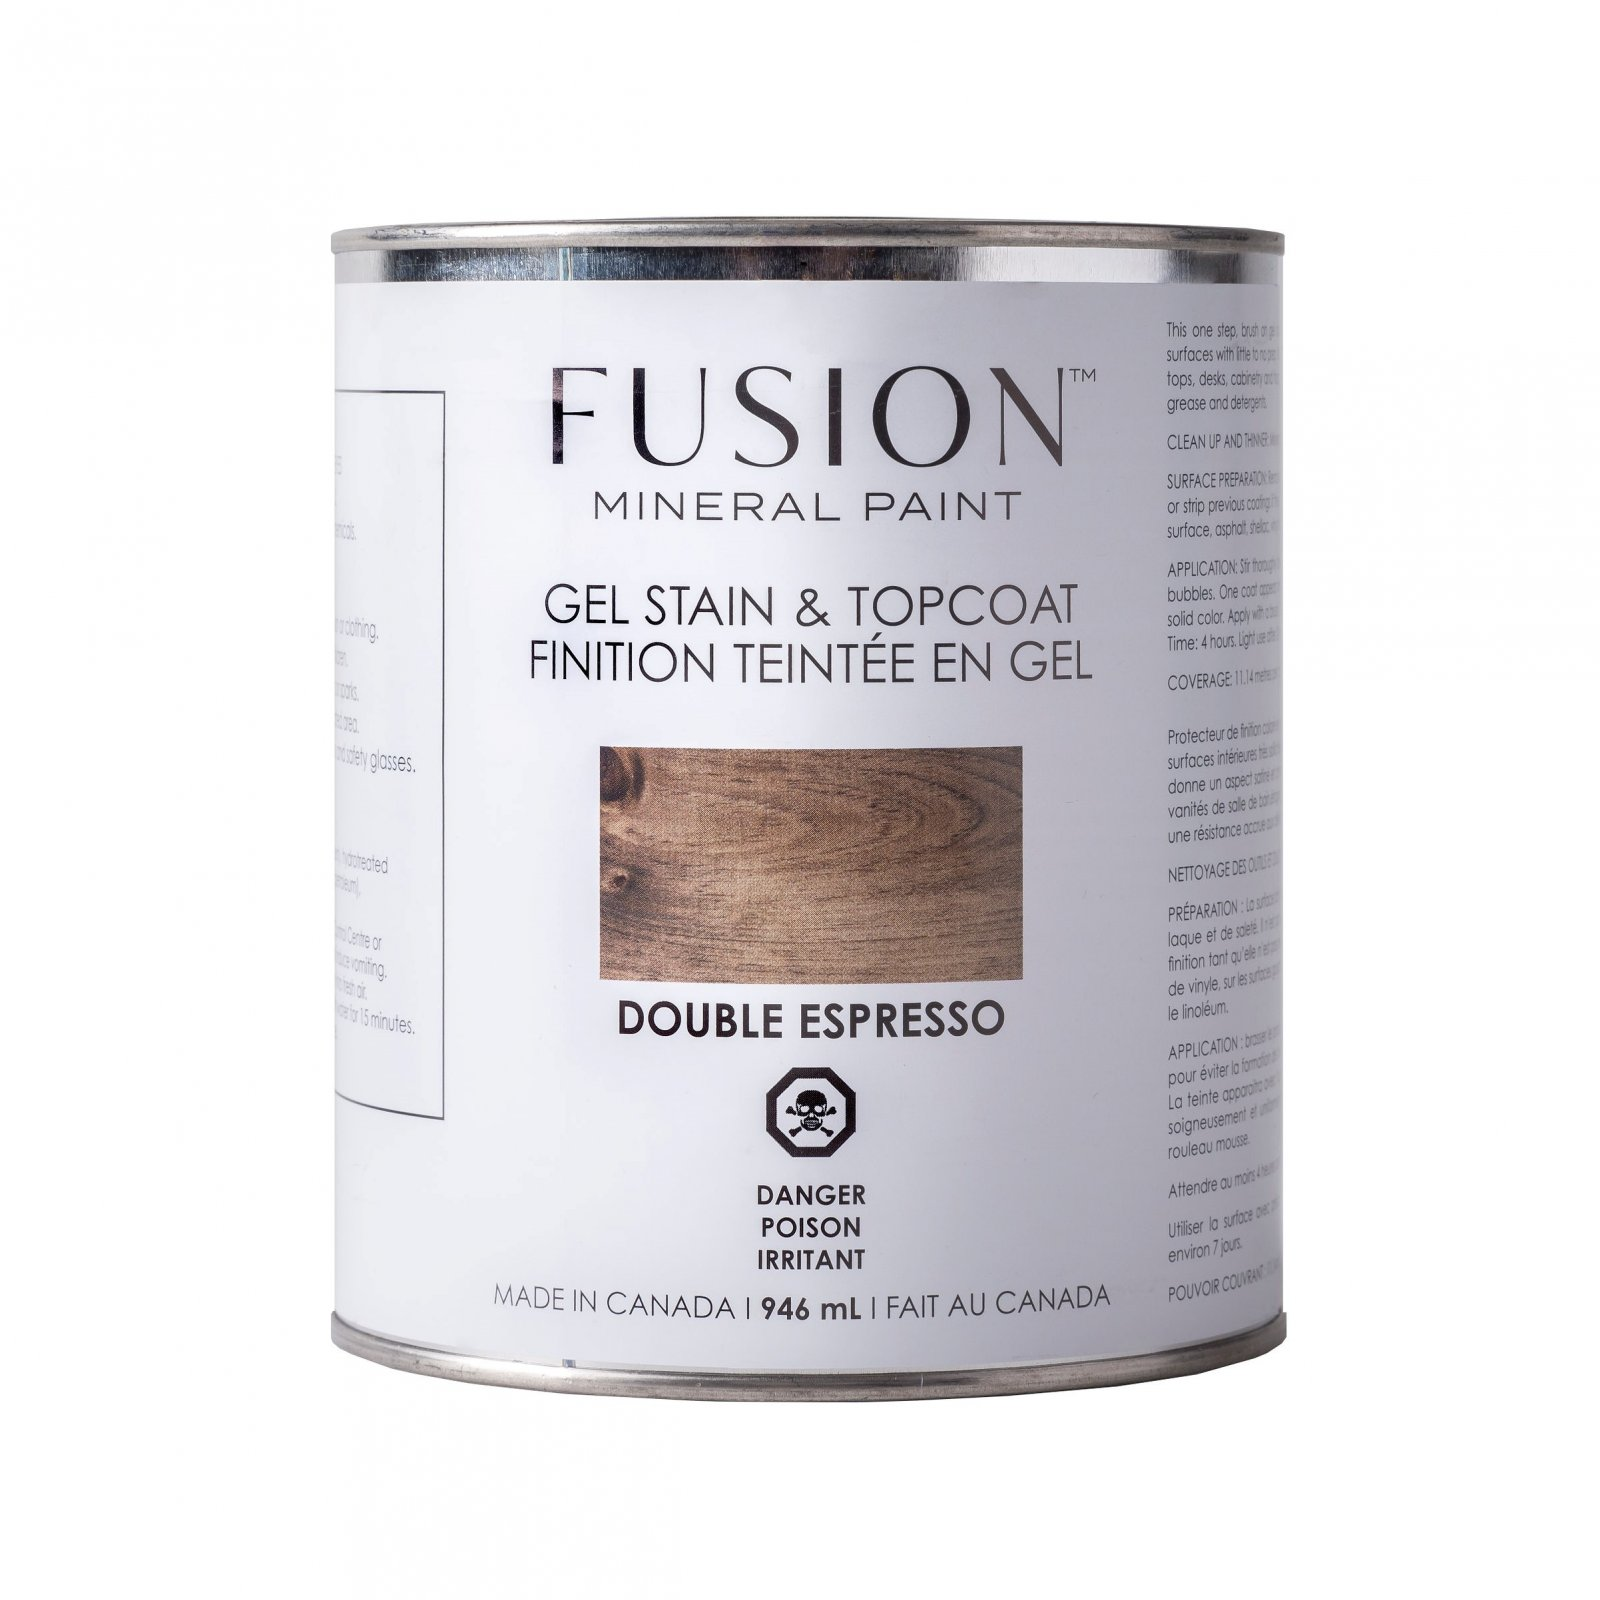 Gel Stain & Topcoat Double Espresso Fusion Mineral Paint